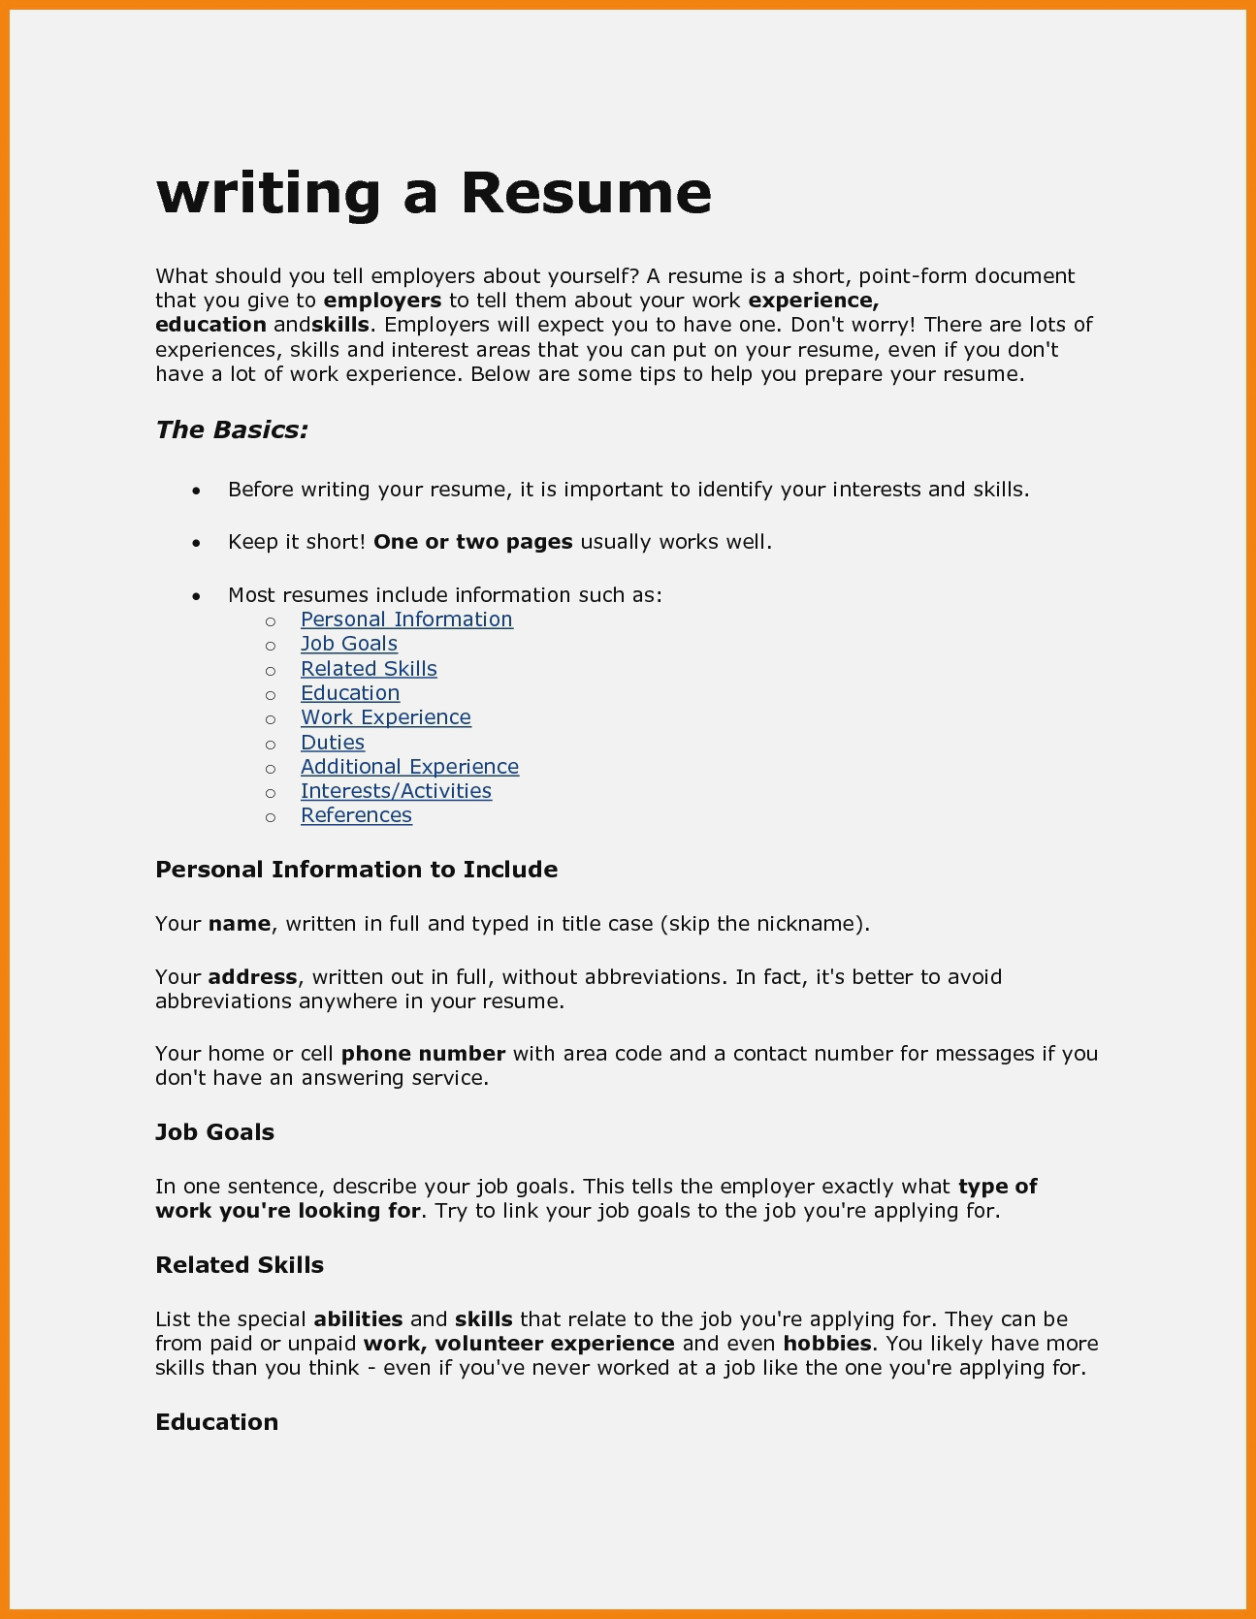 How To Type A Resume Resume How To Write A Resume For A Job High Resolution How To Write Type Of Resume For Job how to type a resume|wikiresume.com